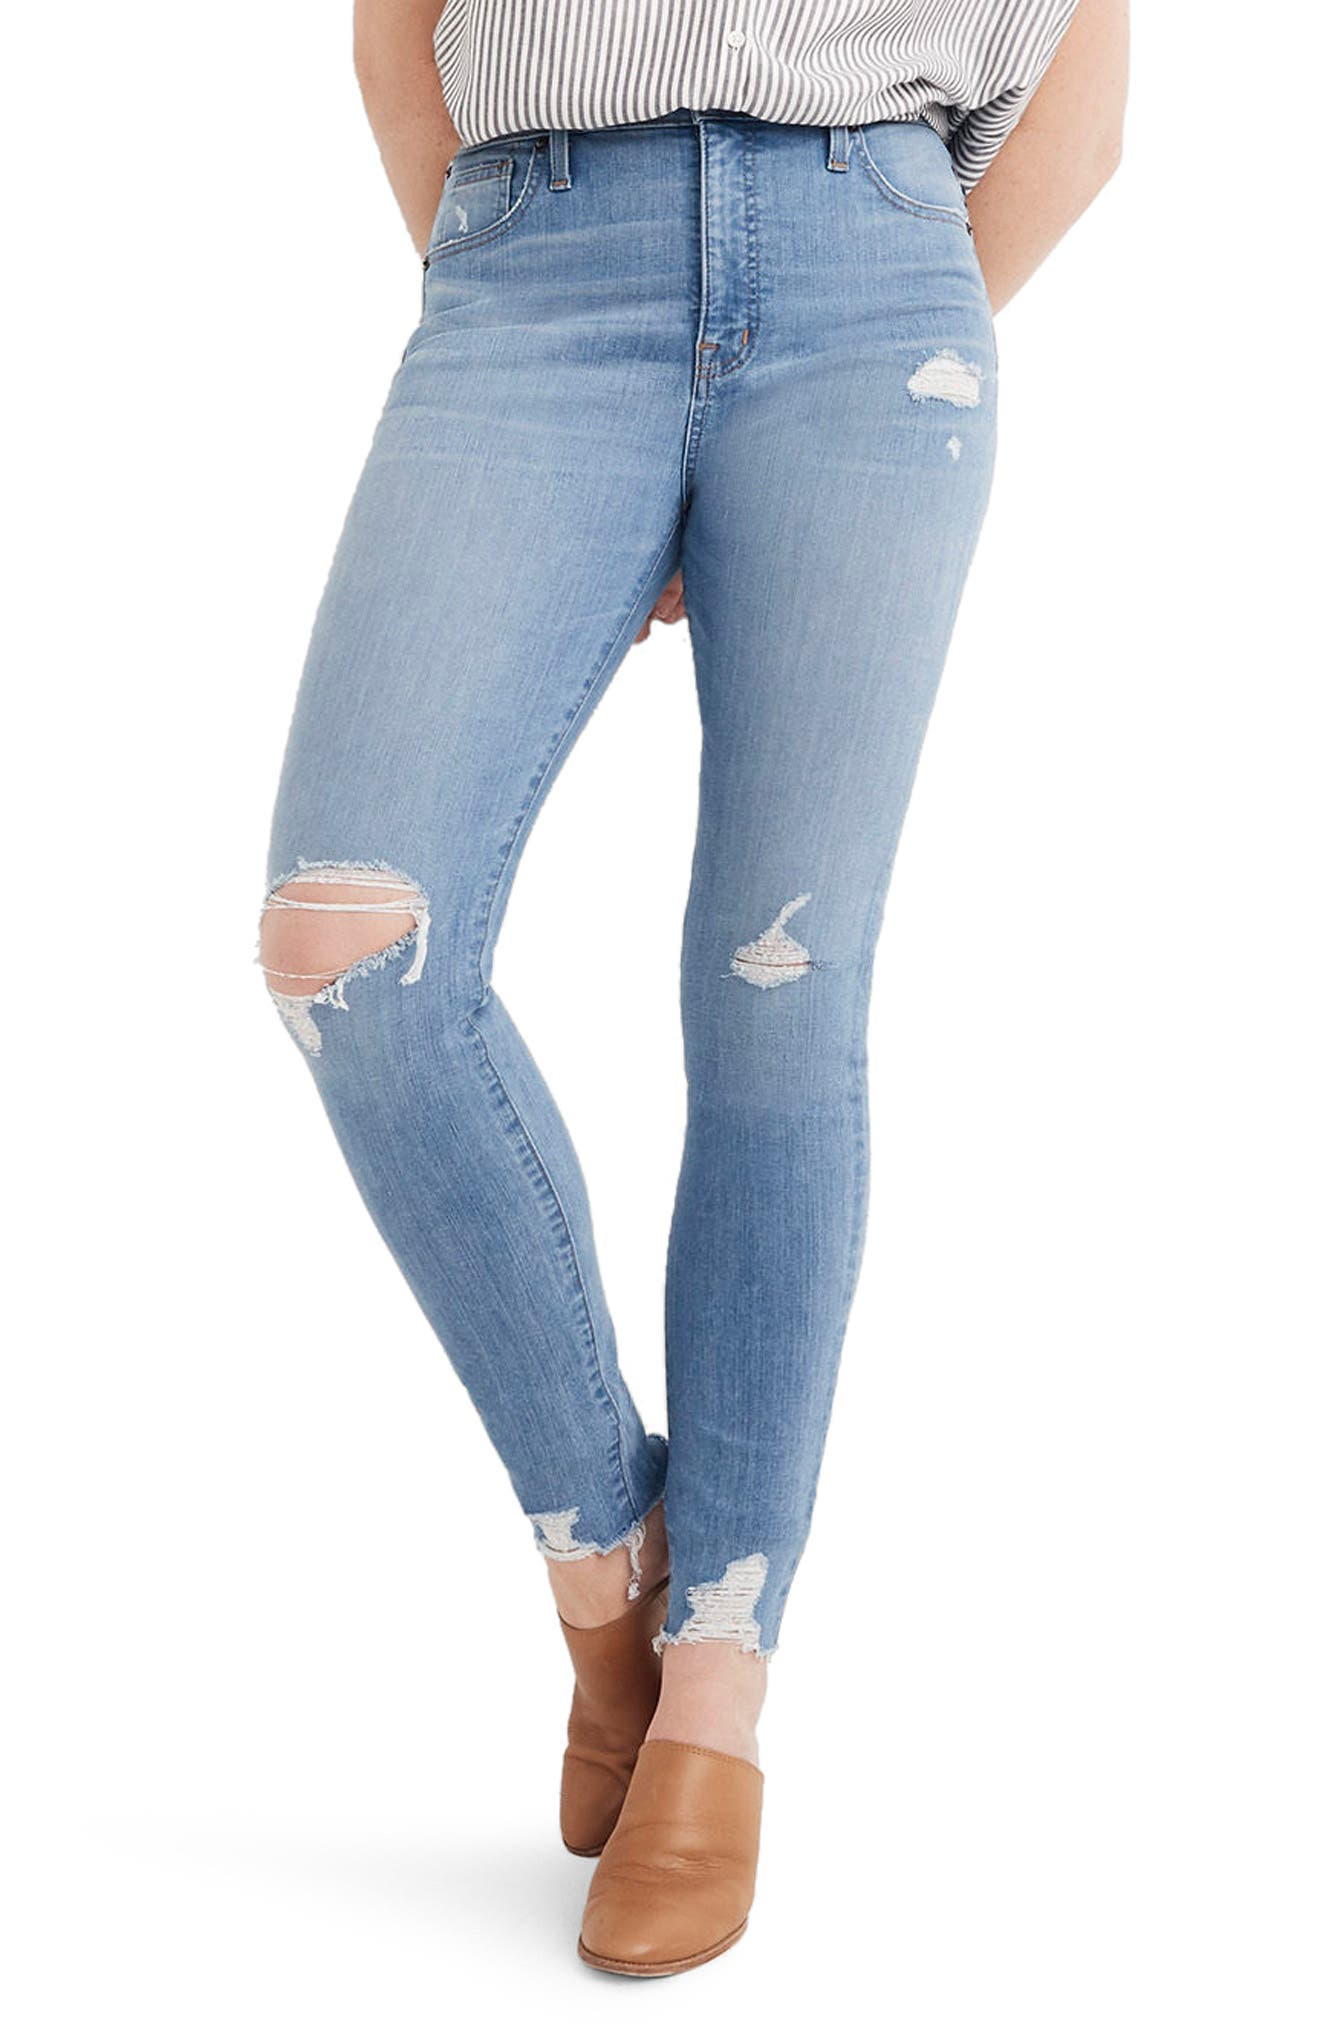 9-Inch High Waist Skinny Jeans,                             Main thumbnail 1, color,                             900